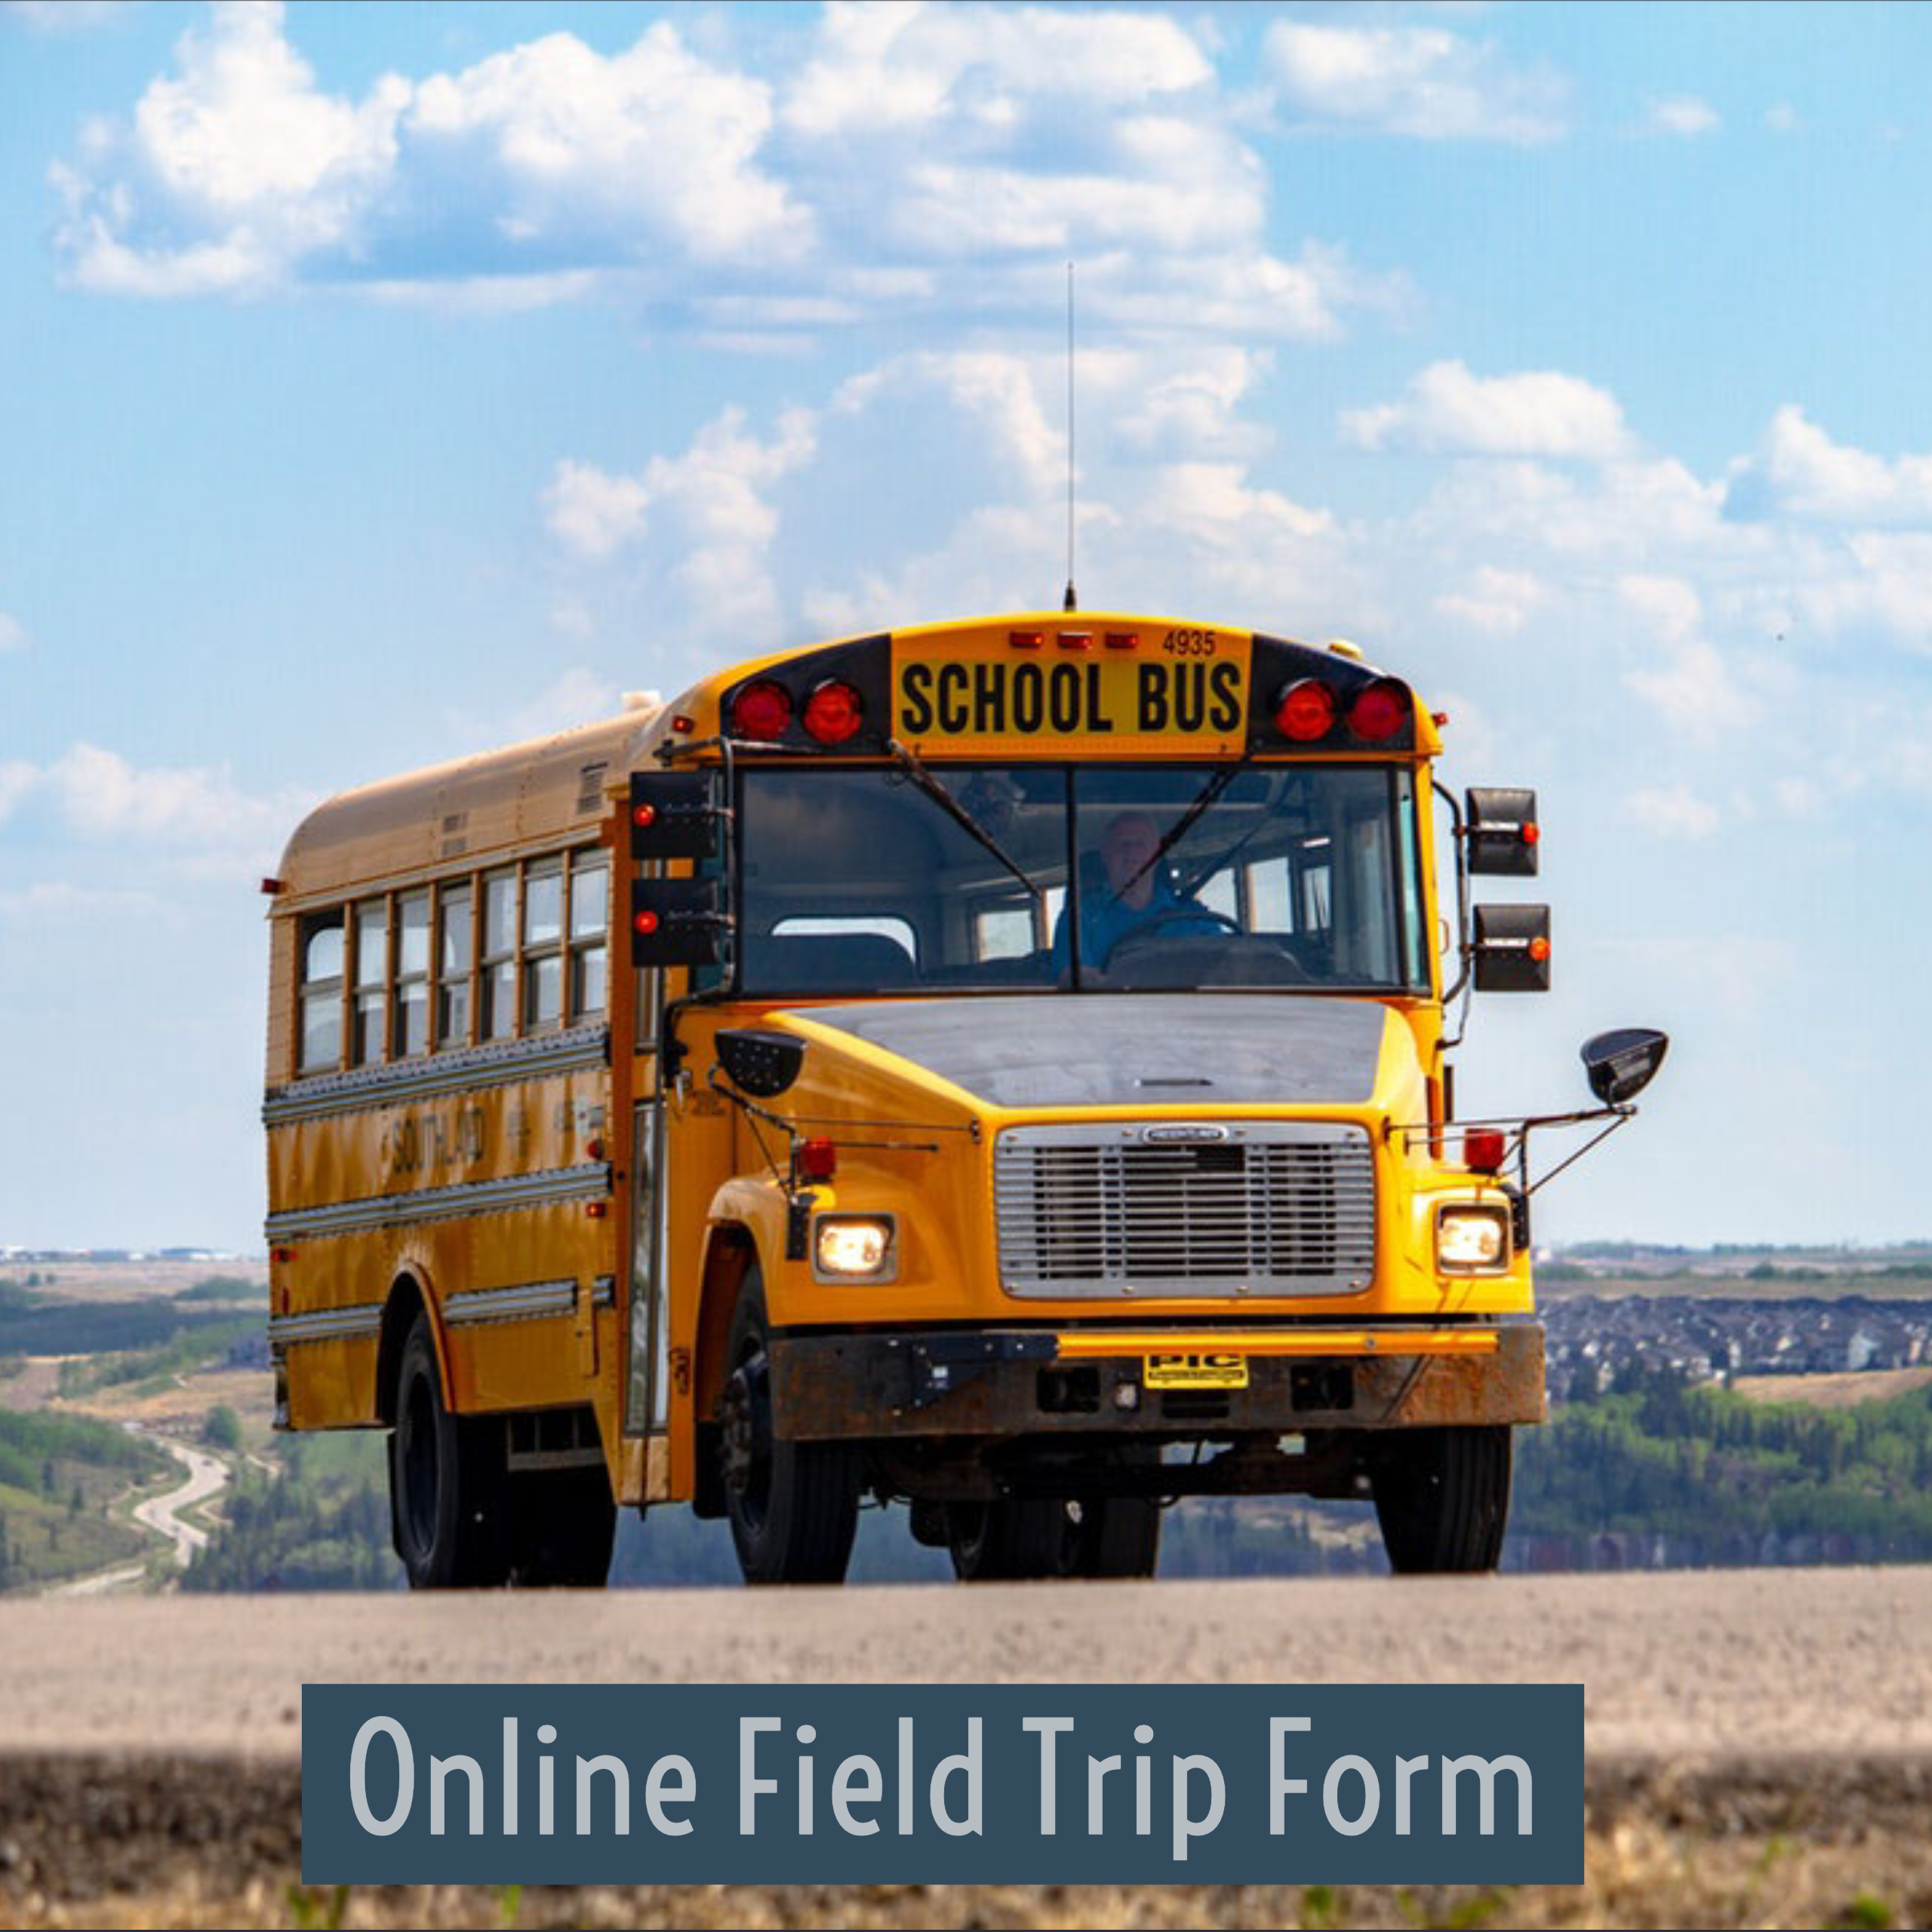 The CESD Online Field Trip Form